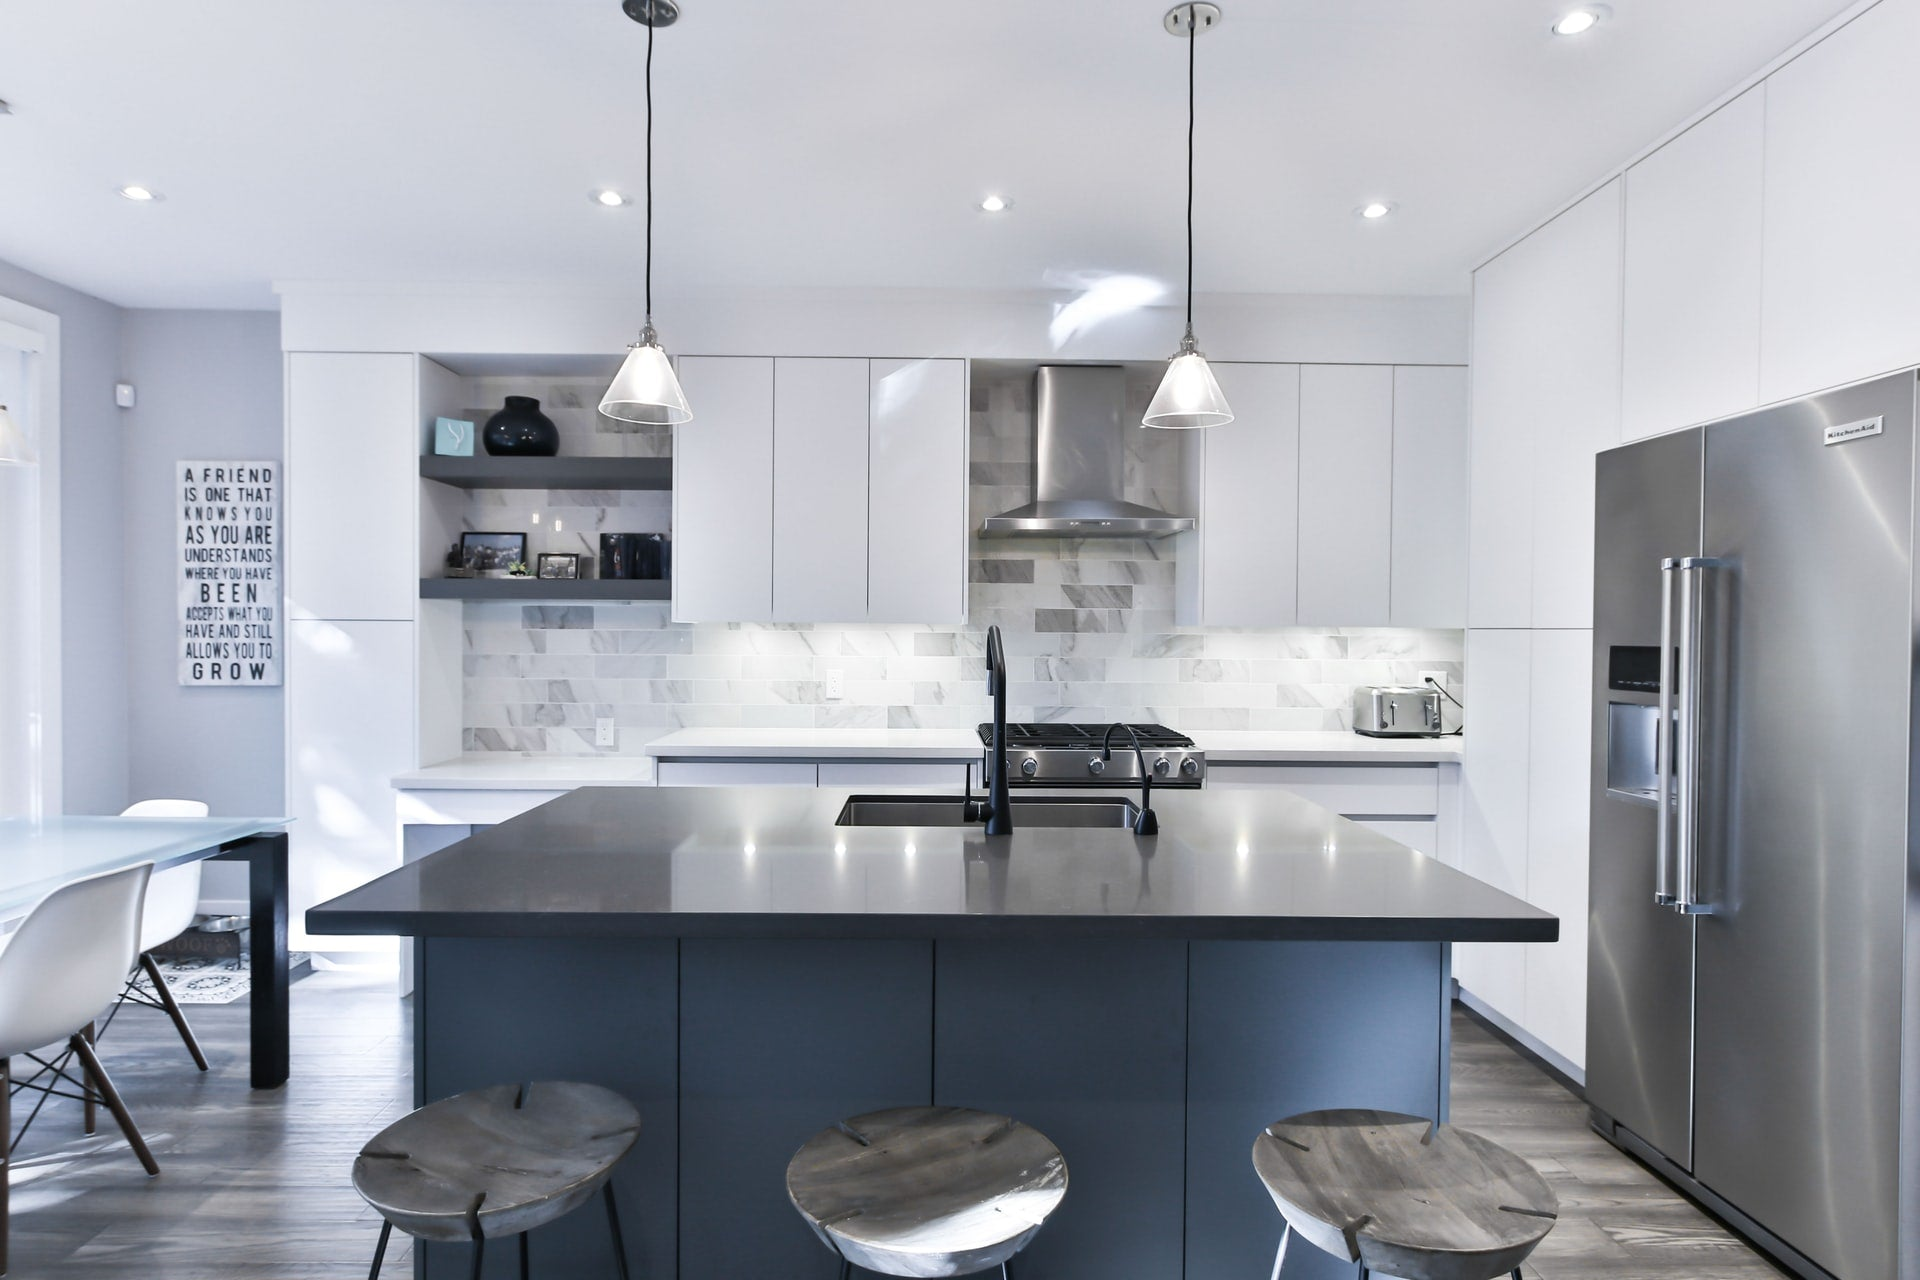 5 Things to Consider When Hiring a Kitchen Contractor in South Florida